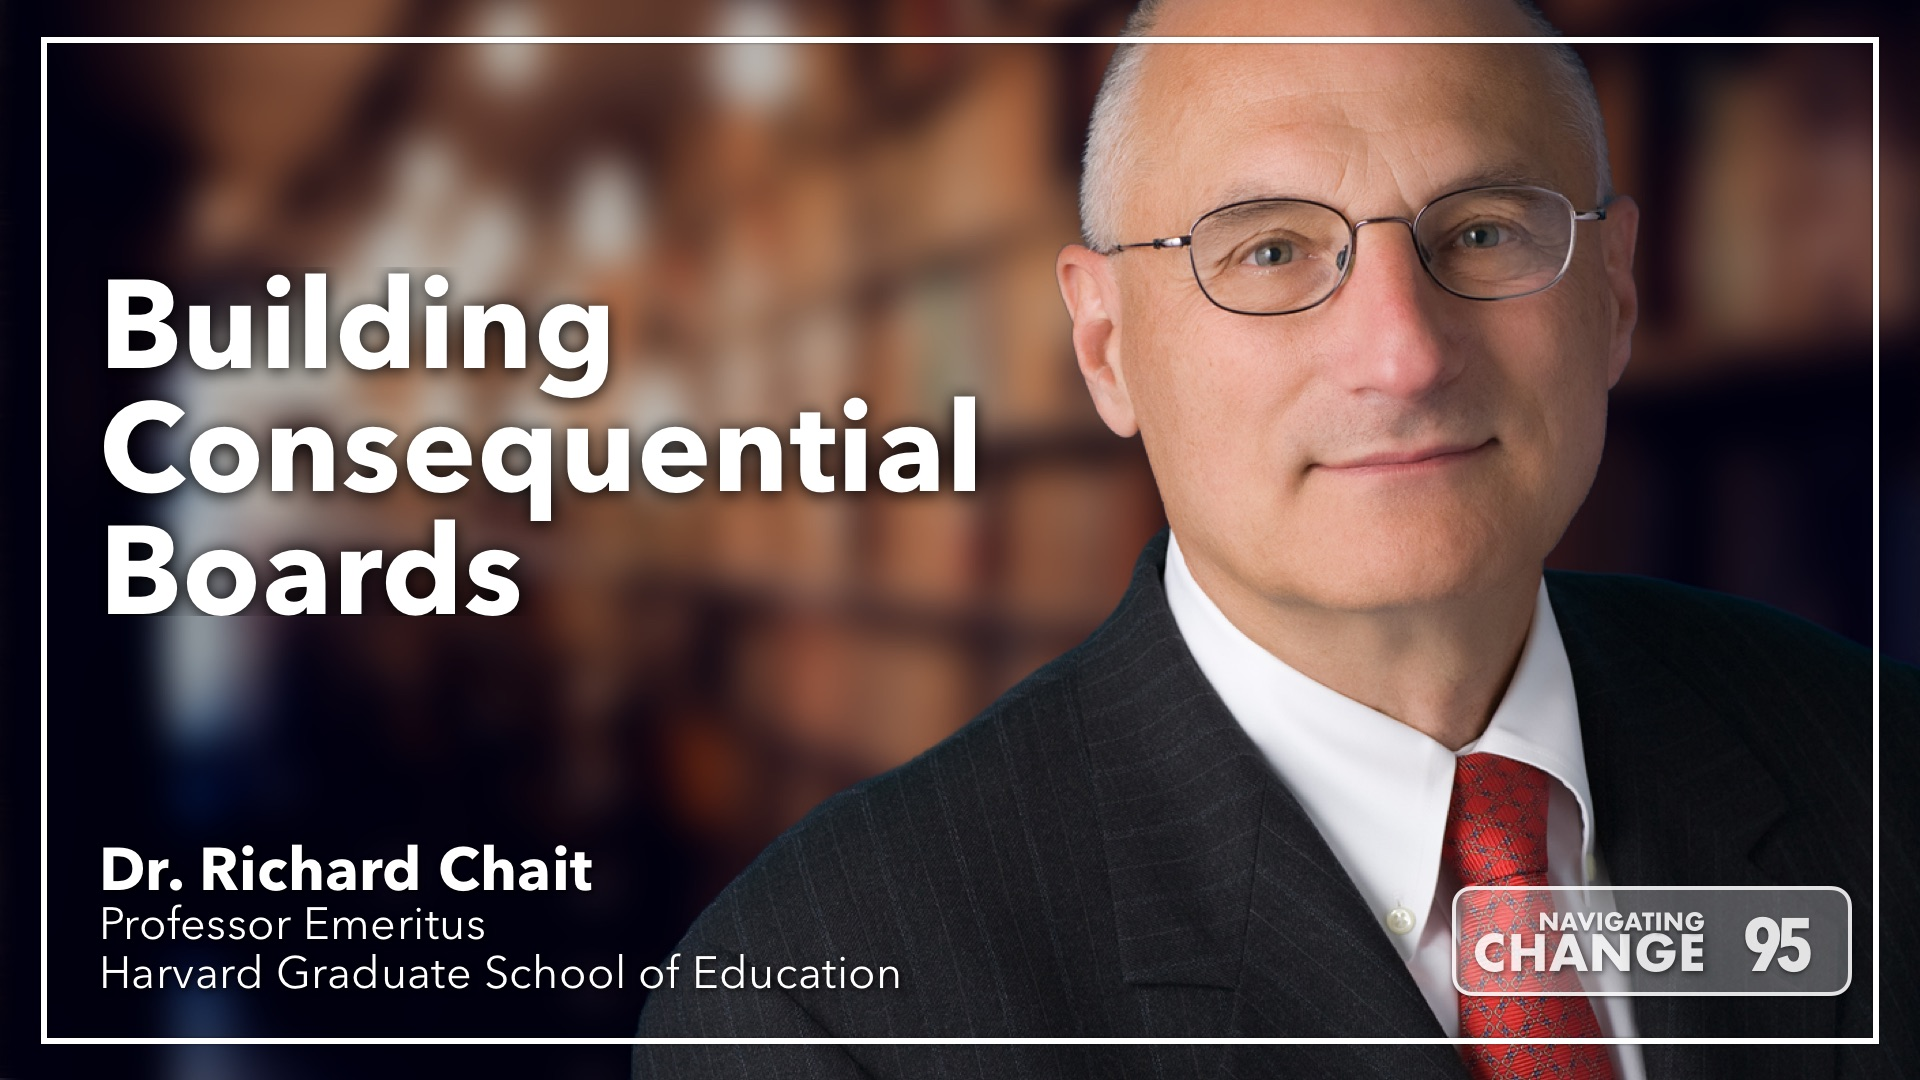 Listen to Building Consequential Boards with Richard Chait on Navigating Change The Education Podcast